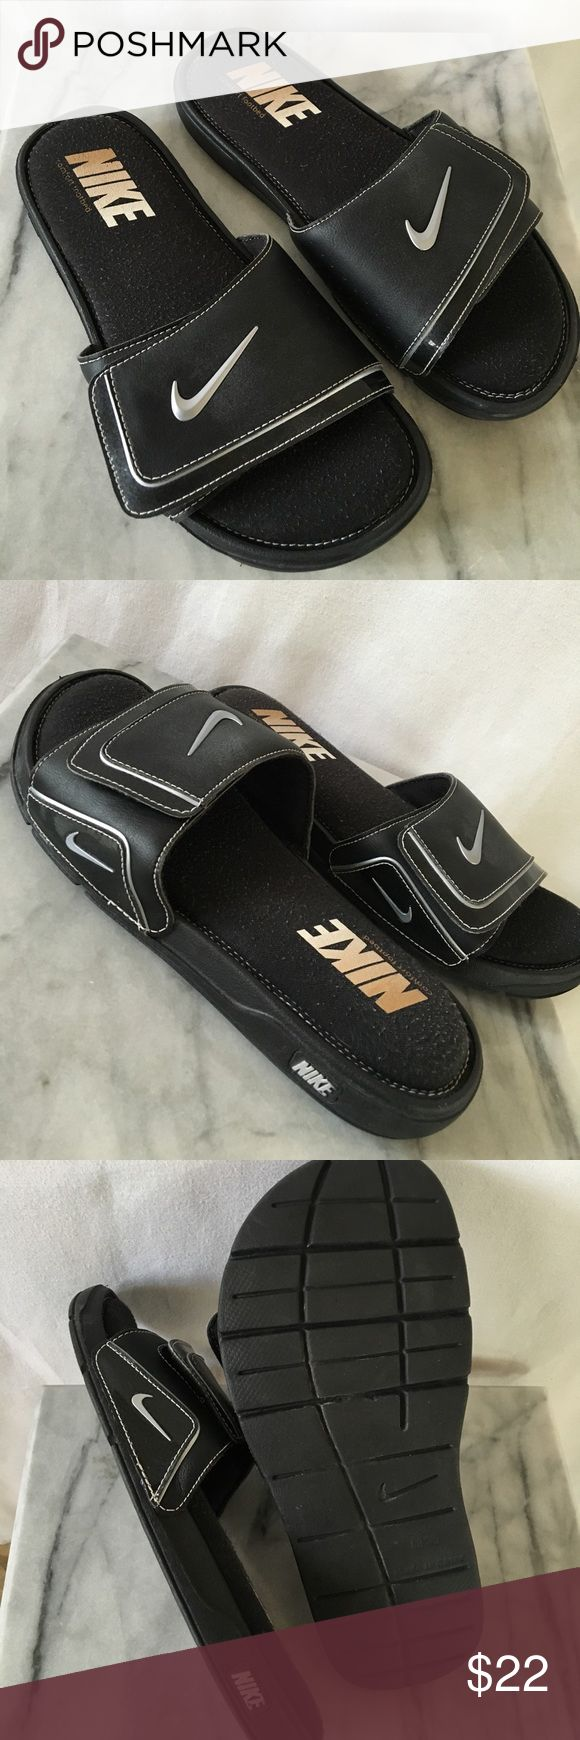 Nike Comfort Slide 2 Mens Sandals Adjustable Velcro upper. Patent trim. Sz 10m. Thx‼️🍾 Nike Shoes Sandals & Flip-Flops